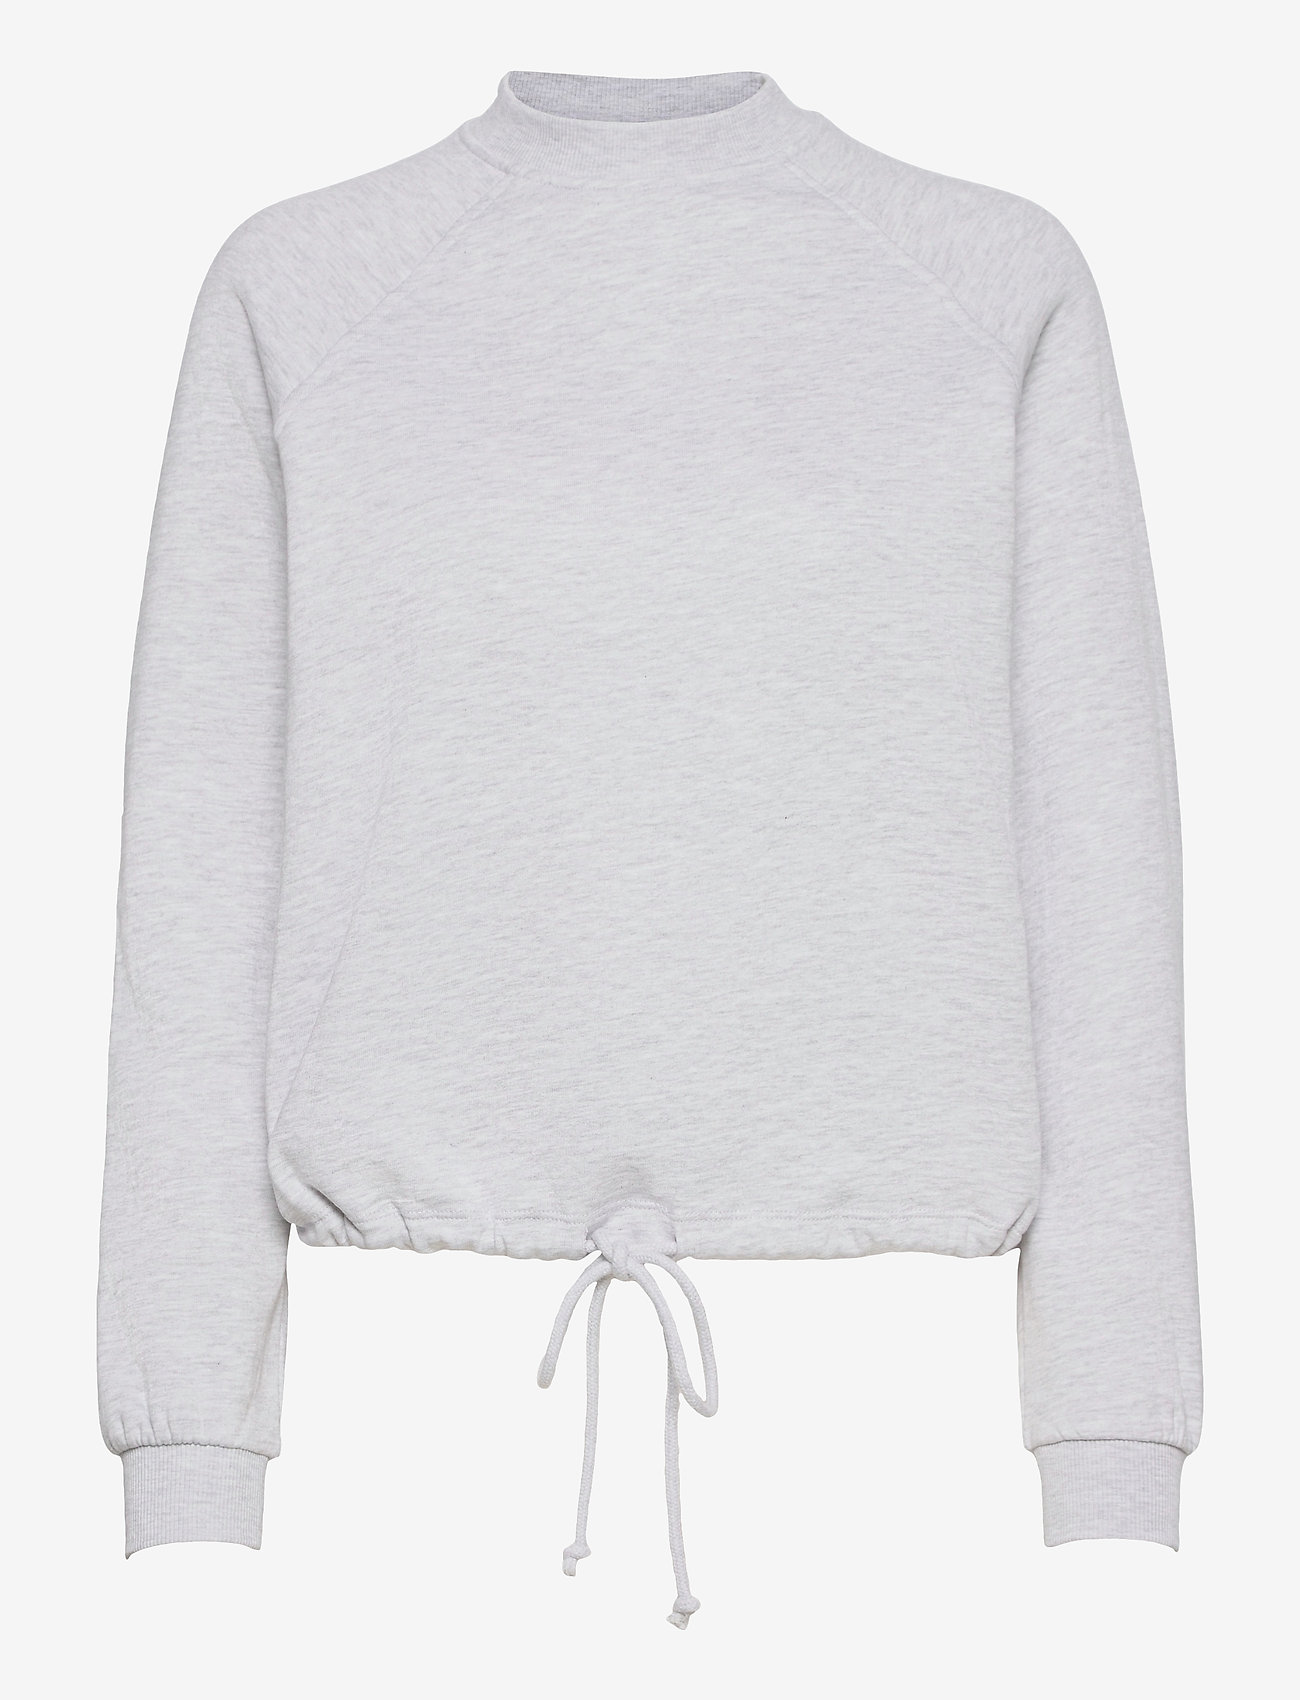 Vero Moda - VMKIRSA LS CREW NECK VMA - sweatshirts & hoodies - light grey melange - 0